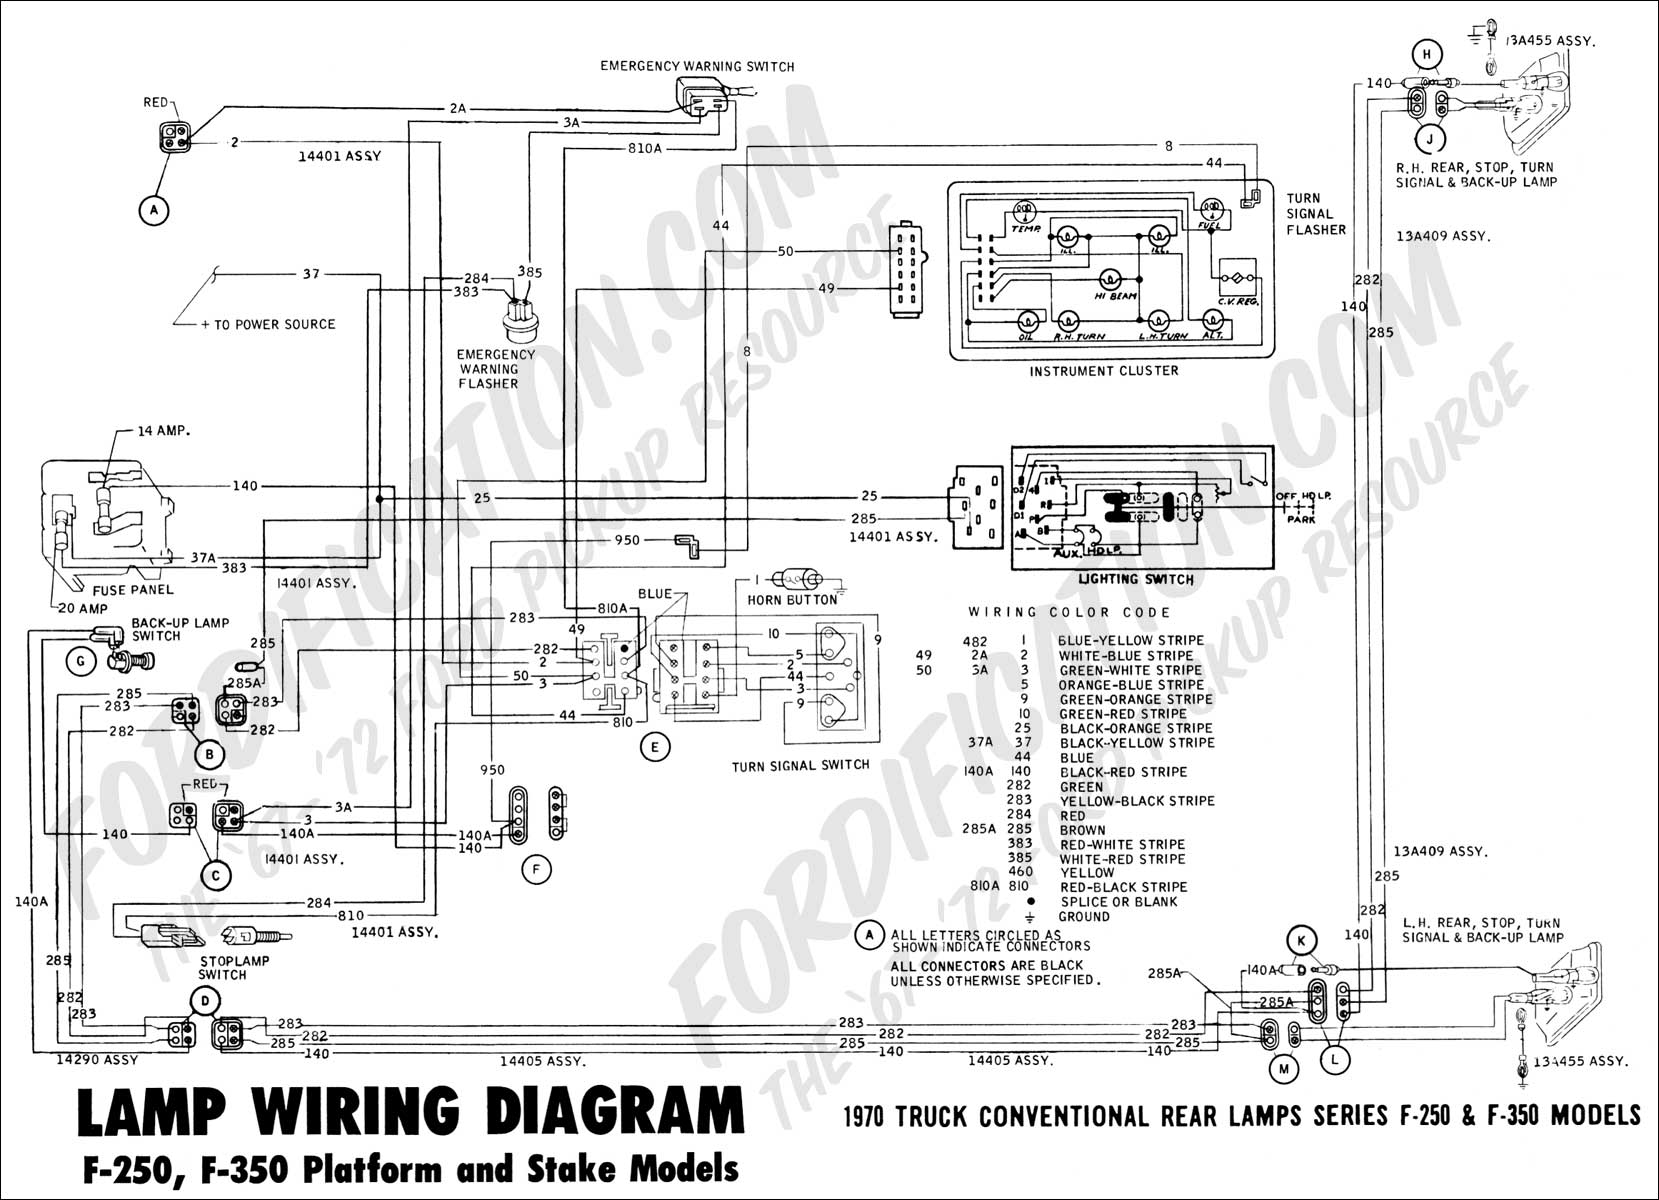 hight resolution of 1970 f 250 f 350 platform stake rear lamp wiring 01